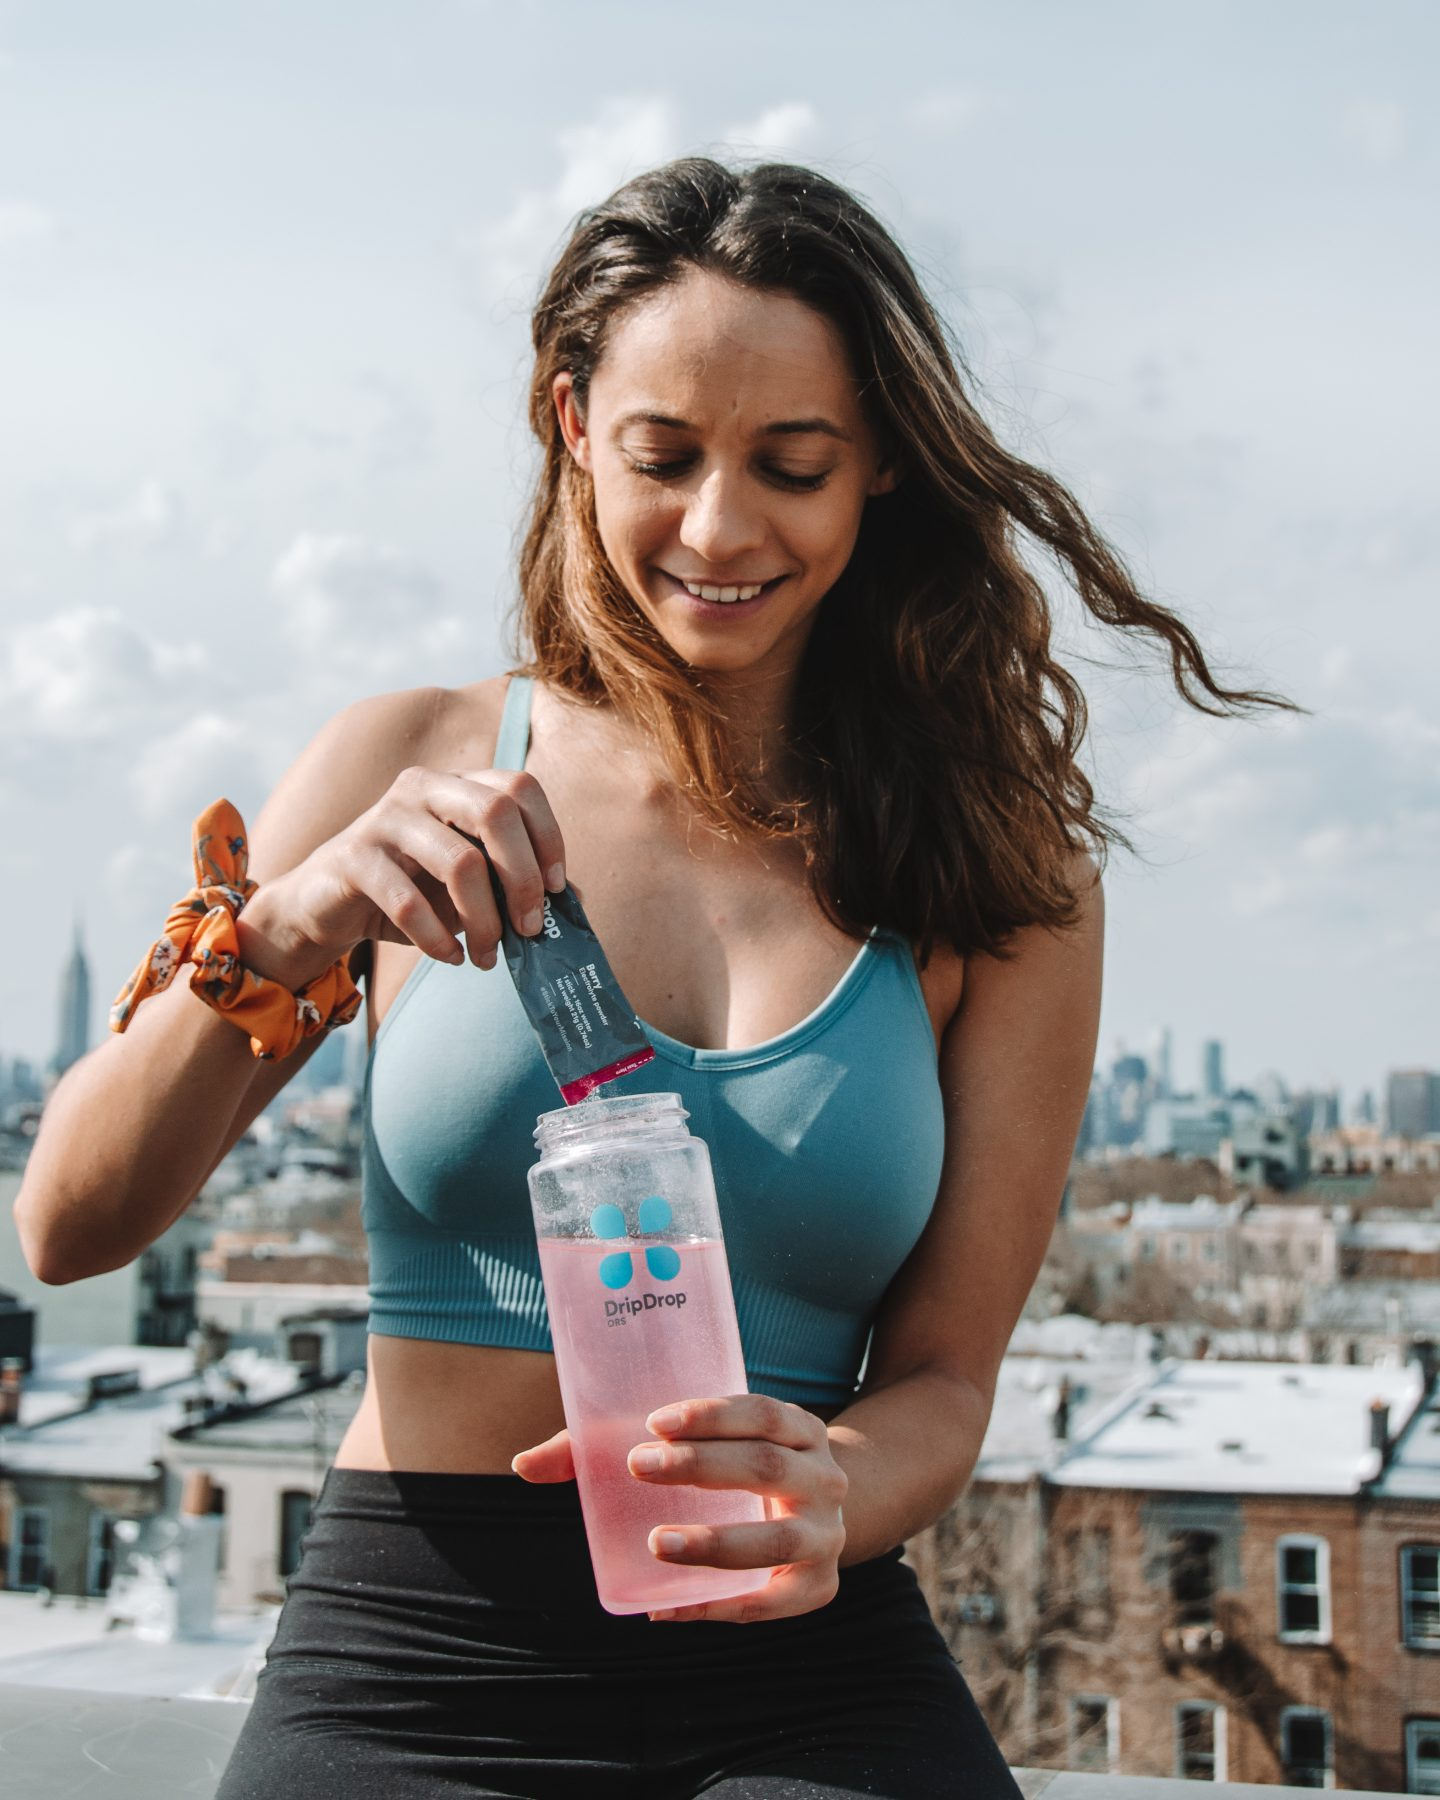 stay hydrated with dripdrop while traveling